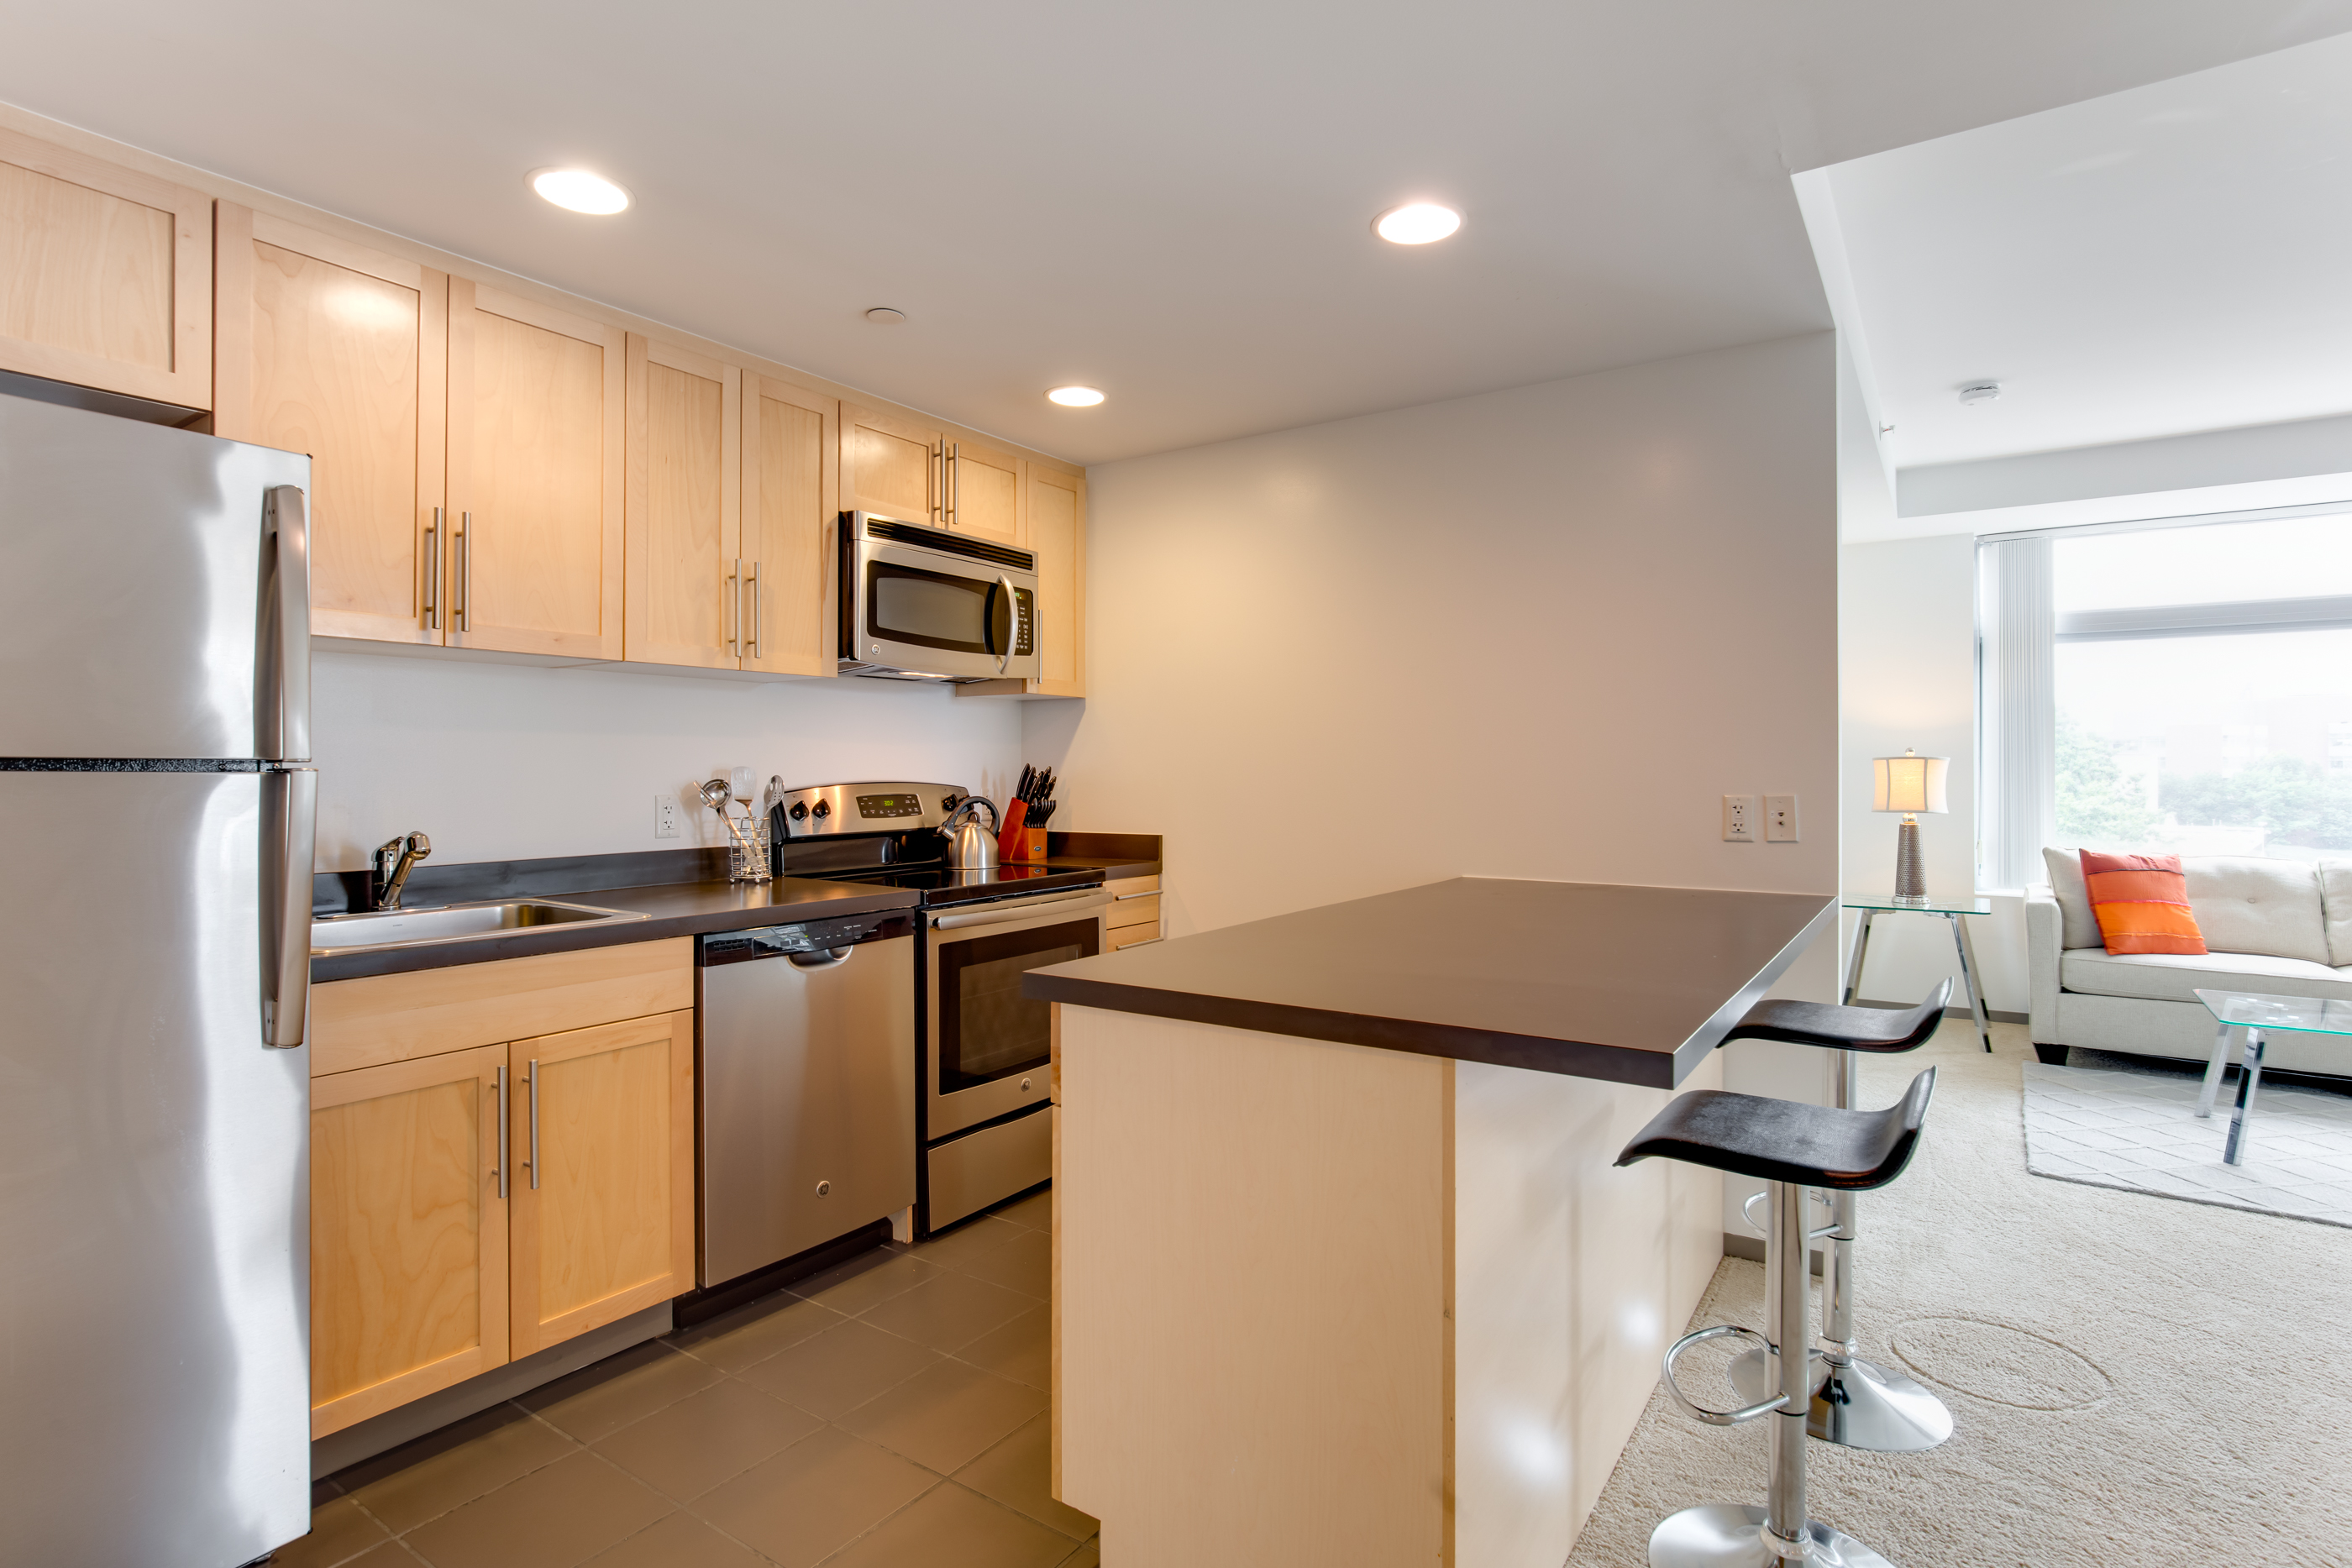 image 4 furnished 2 bedroom Apartment for rent in Cambridge, Boston Area